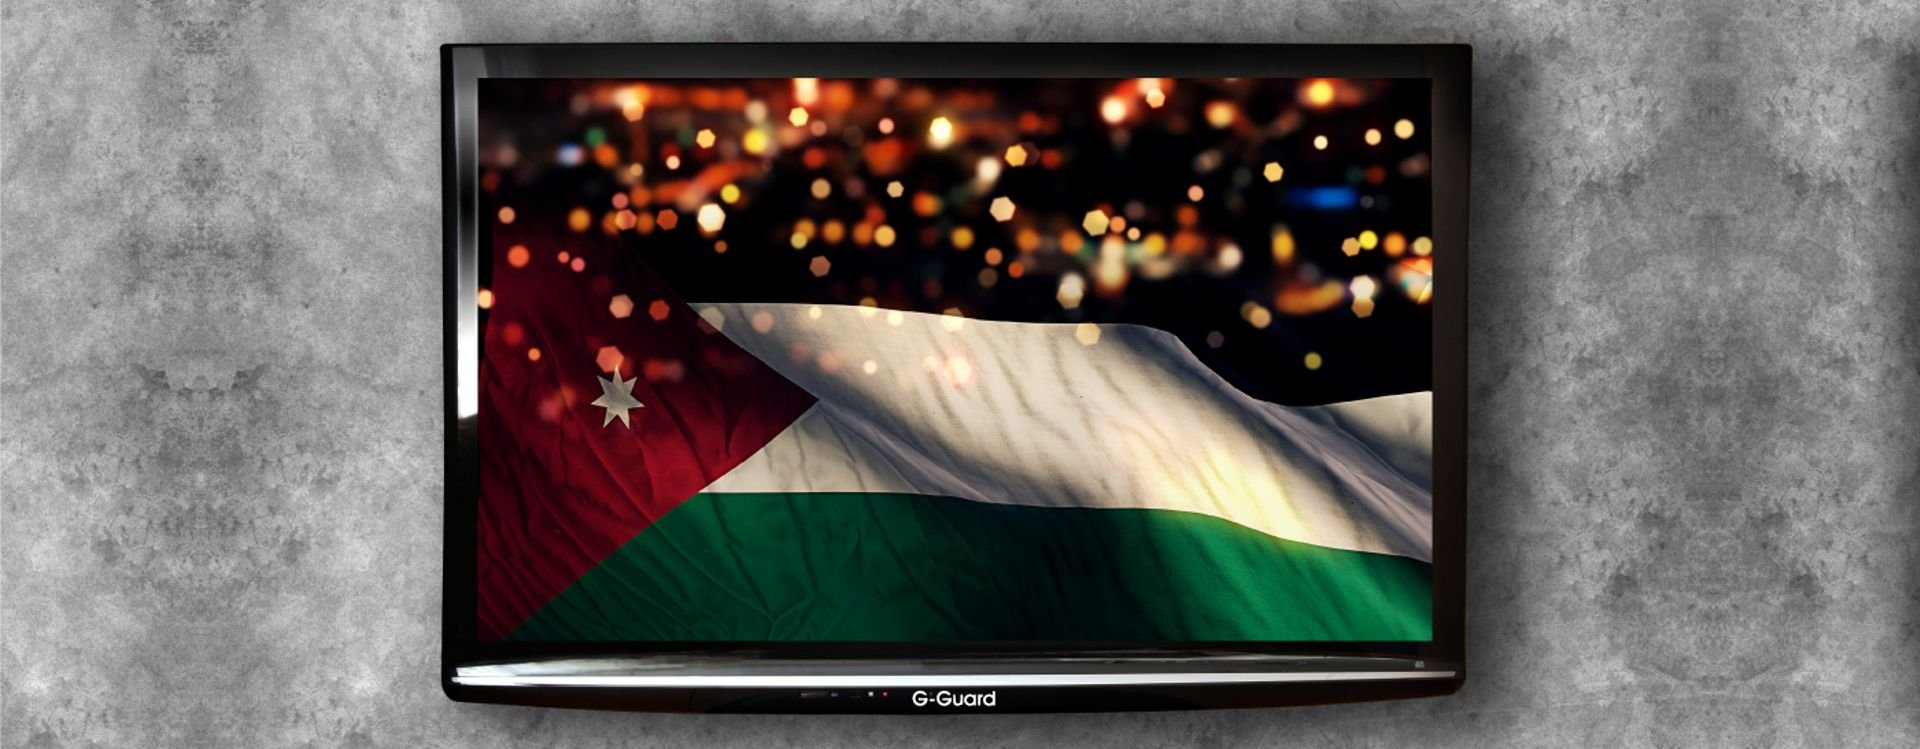 LED Screens are the Most Popular in Jordan Coming First before Plasma Screens.